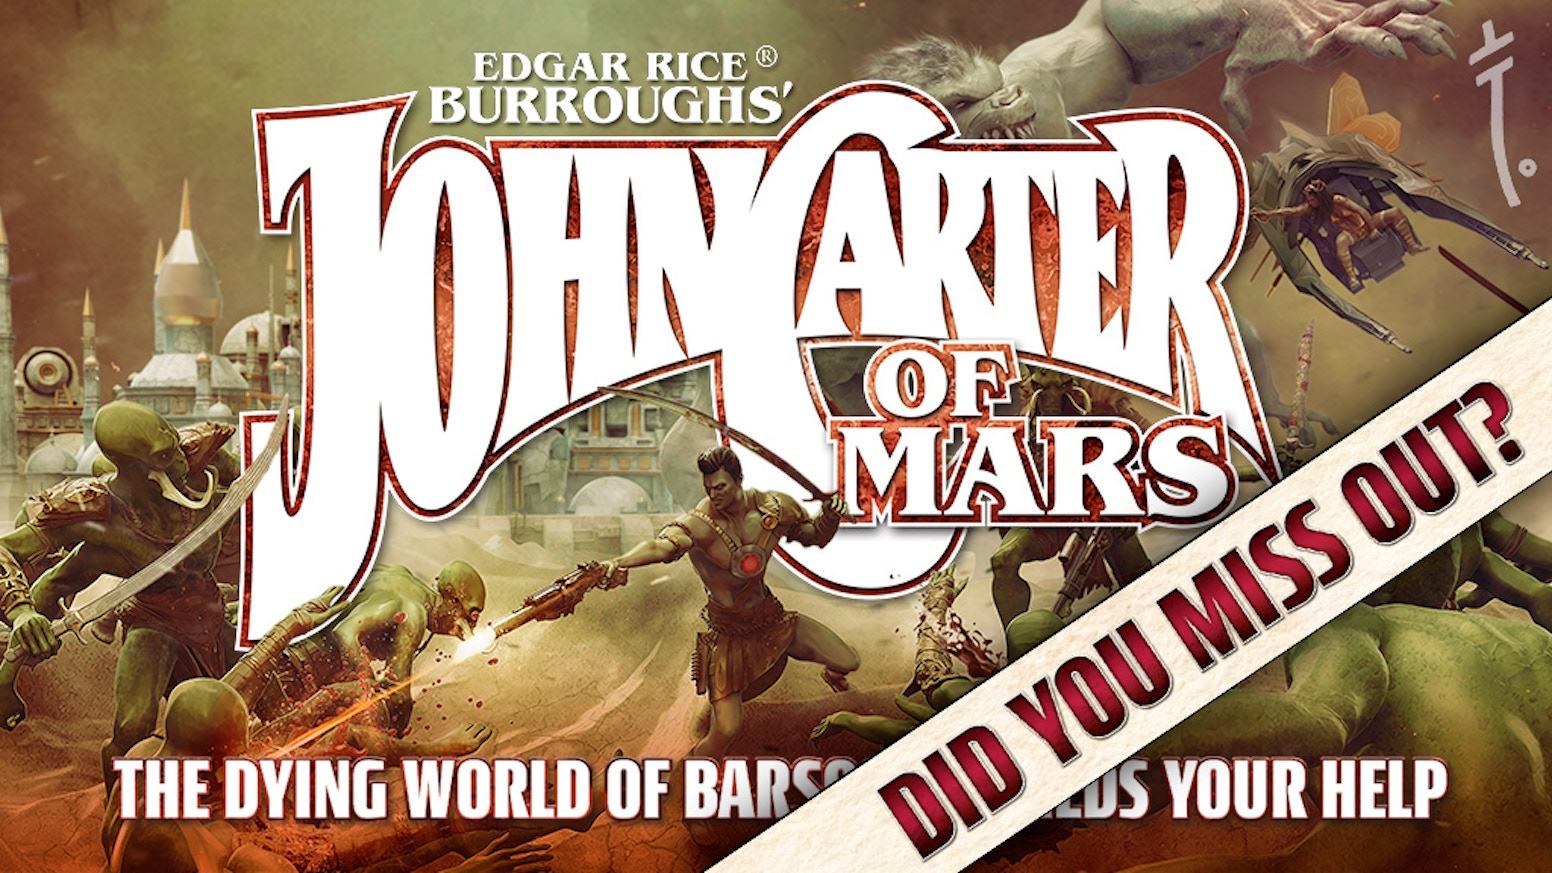 Adventures on The Dying World of Barsoom.  A science-fantasy tabletop roleplaying game from the mind of Edgar Rice Burroughs